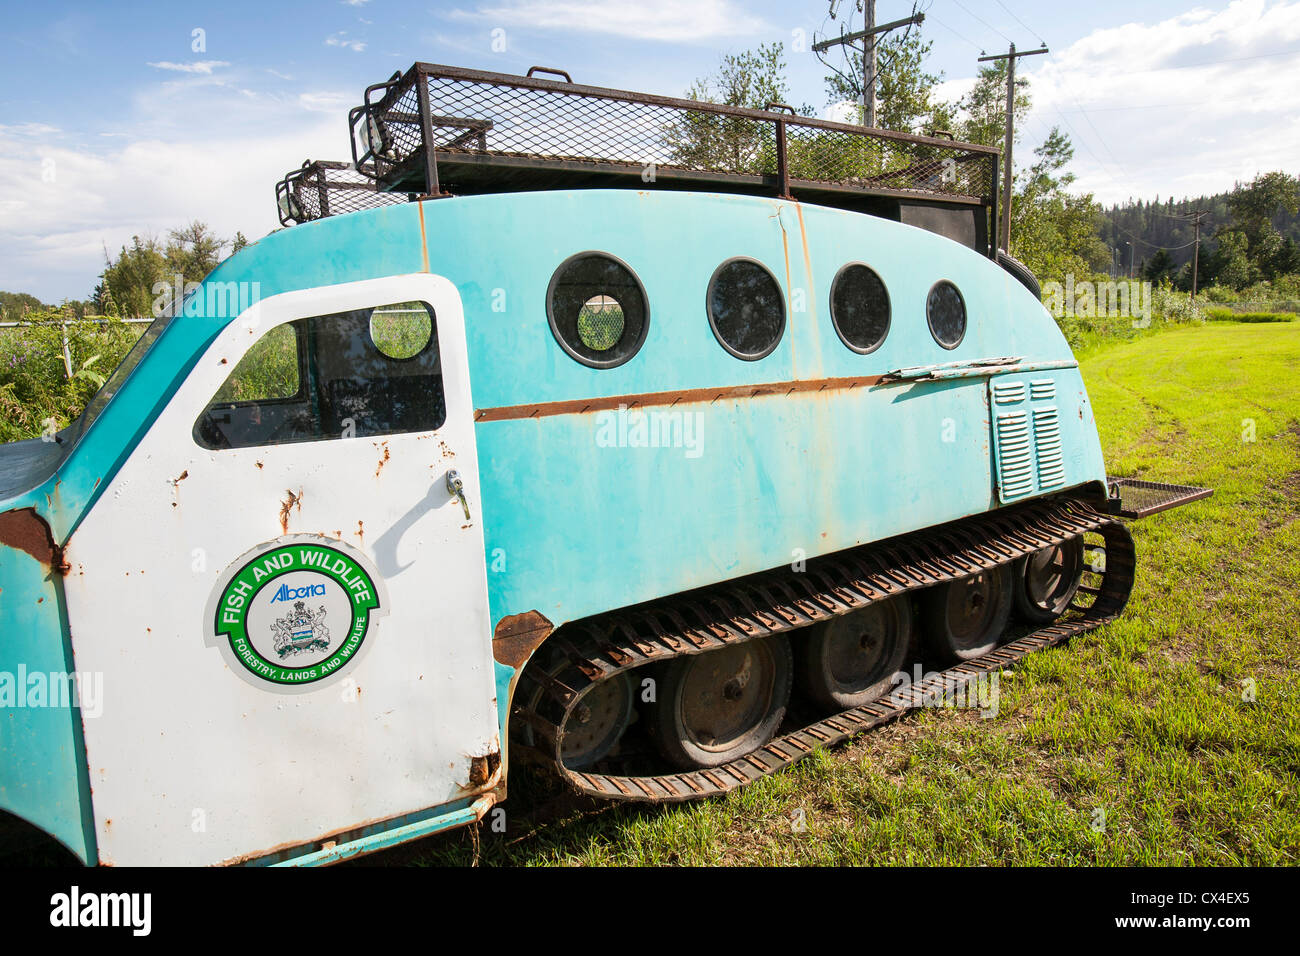 An old preserved snow mobile in the museum in Fort McMurray, Alberta, Canada. - Stock Image